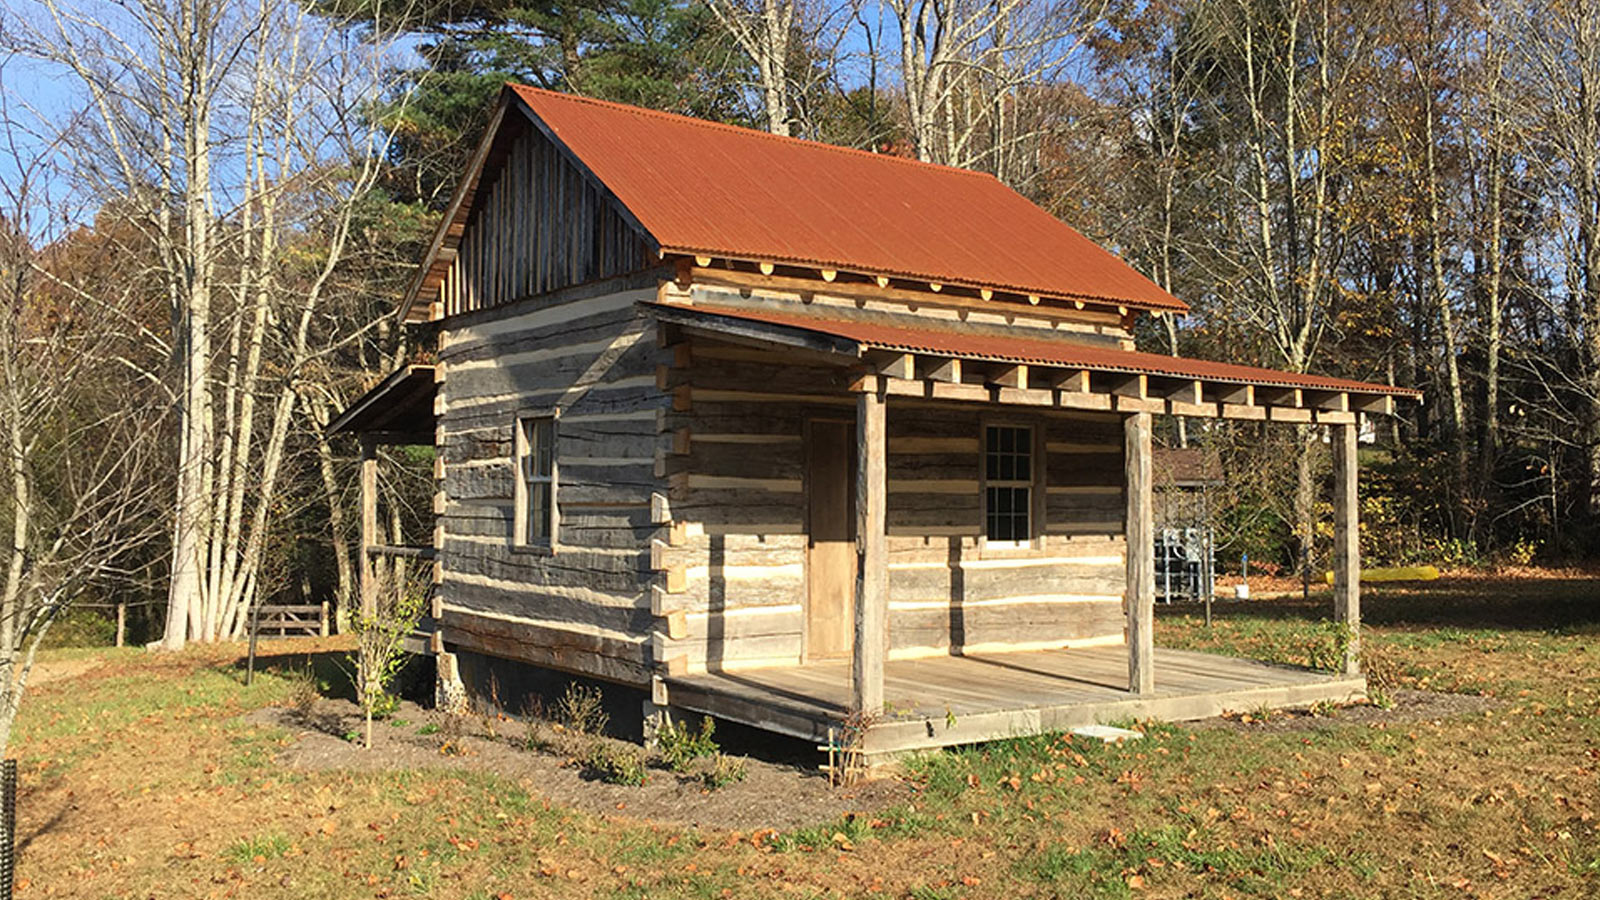 Handcrafted Cabins and Barns - Barnwood Living